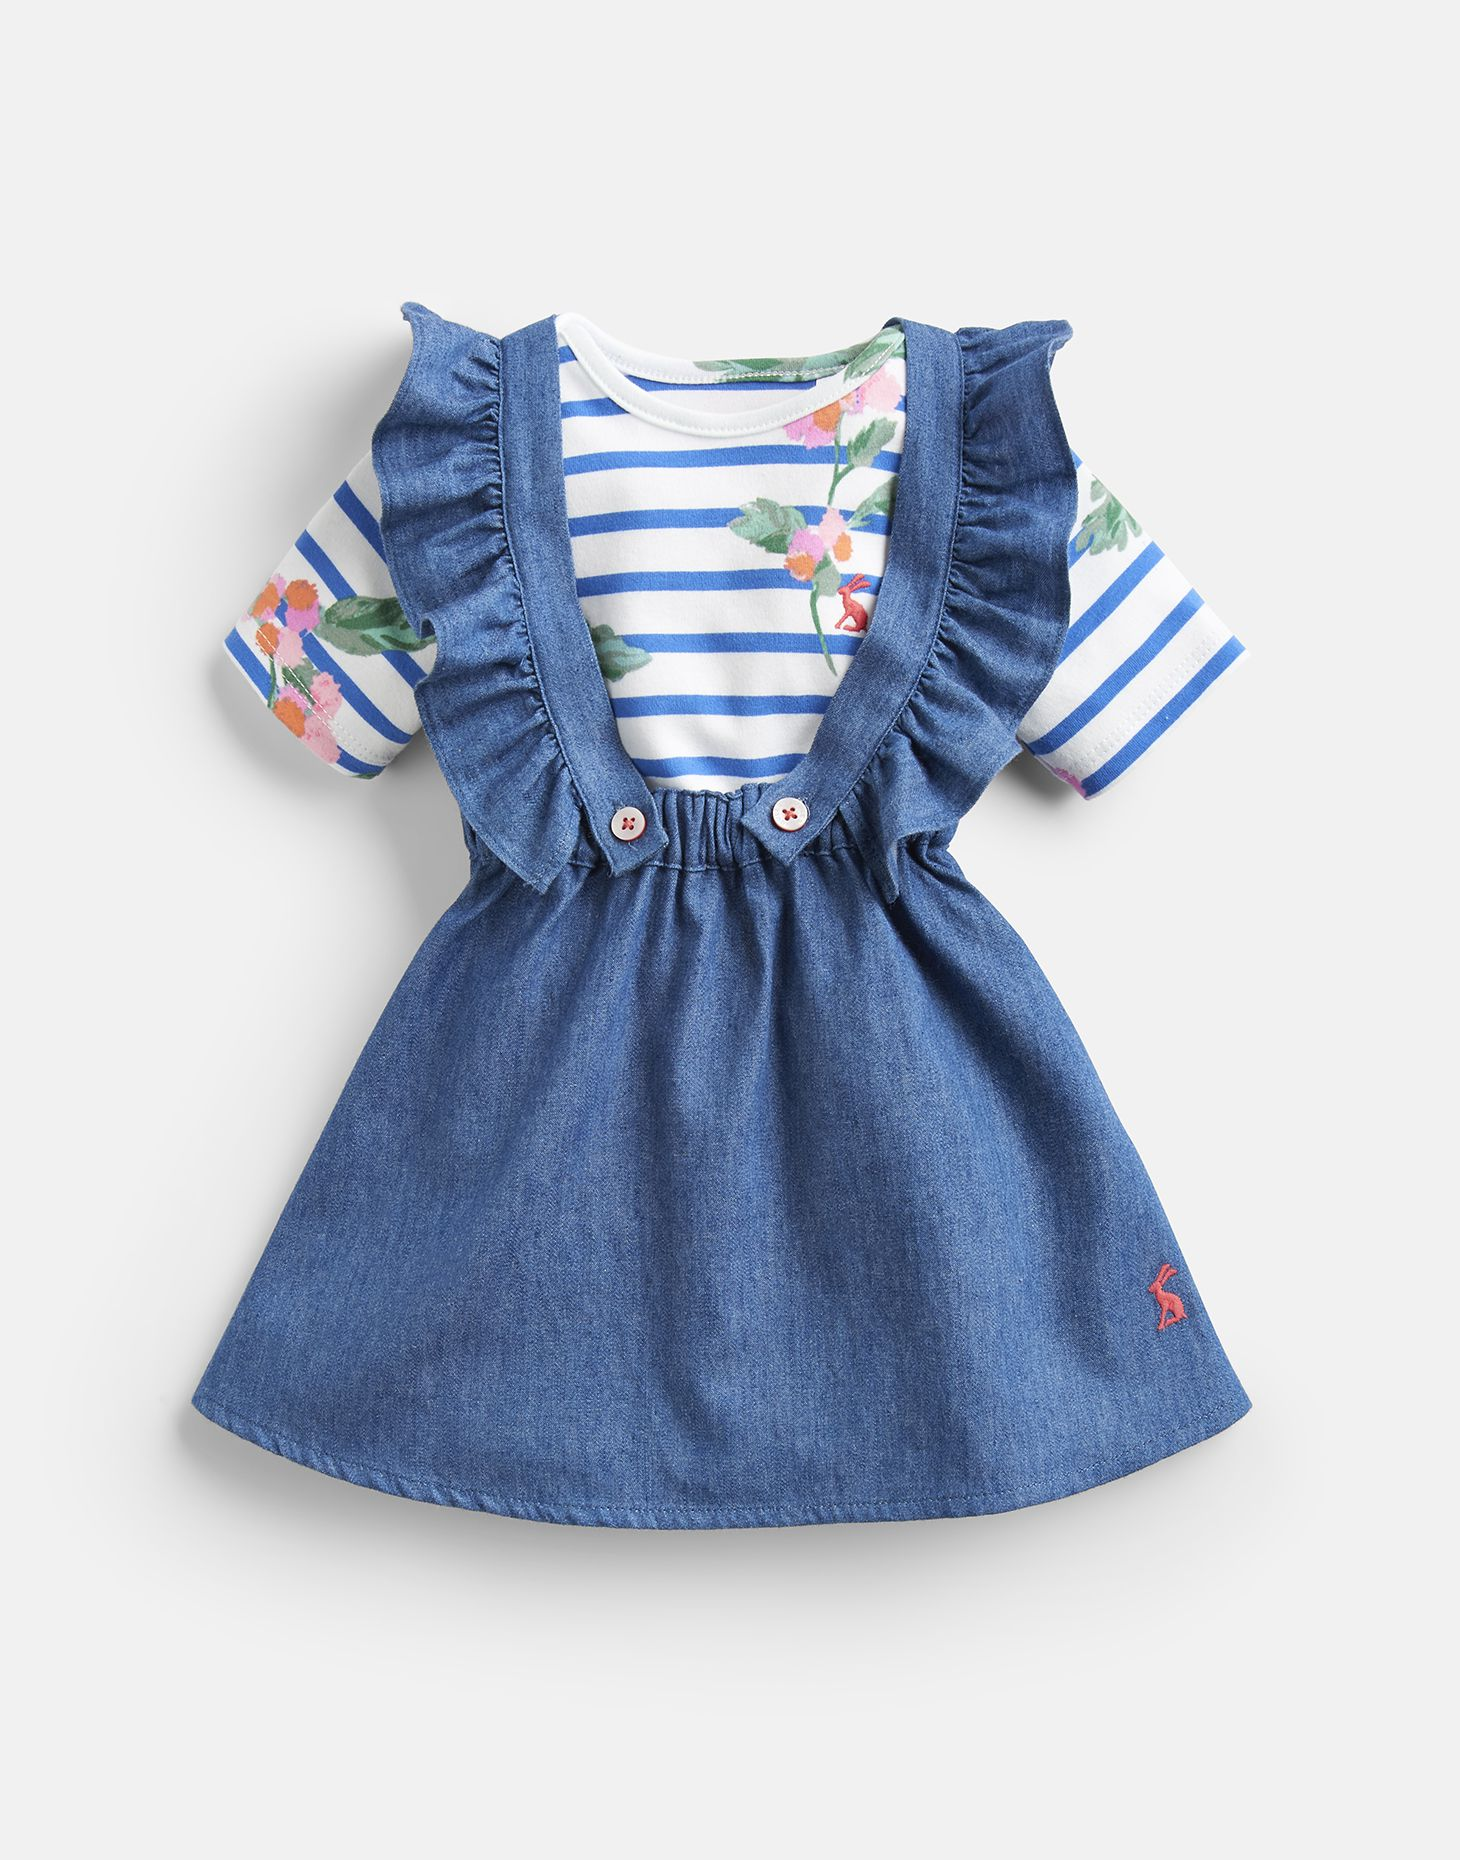 Baby Responsible 18-24 Months Joules Dress Girls' Clothing (0-24 Months)